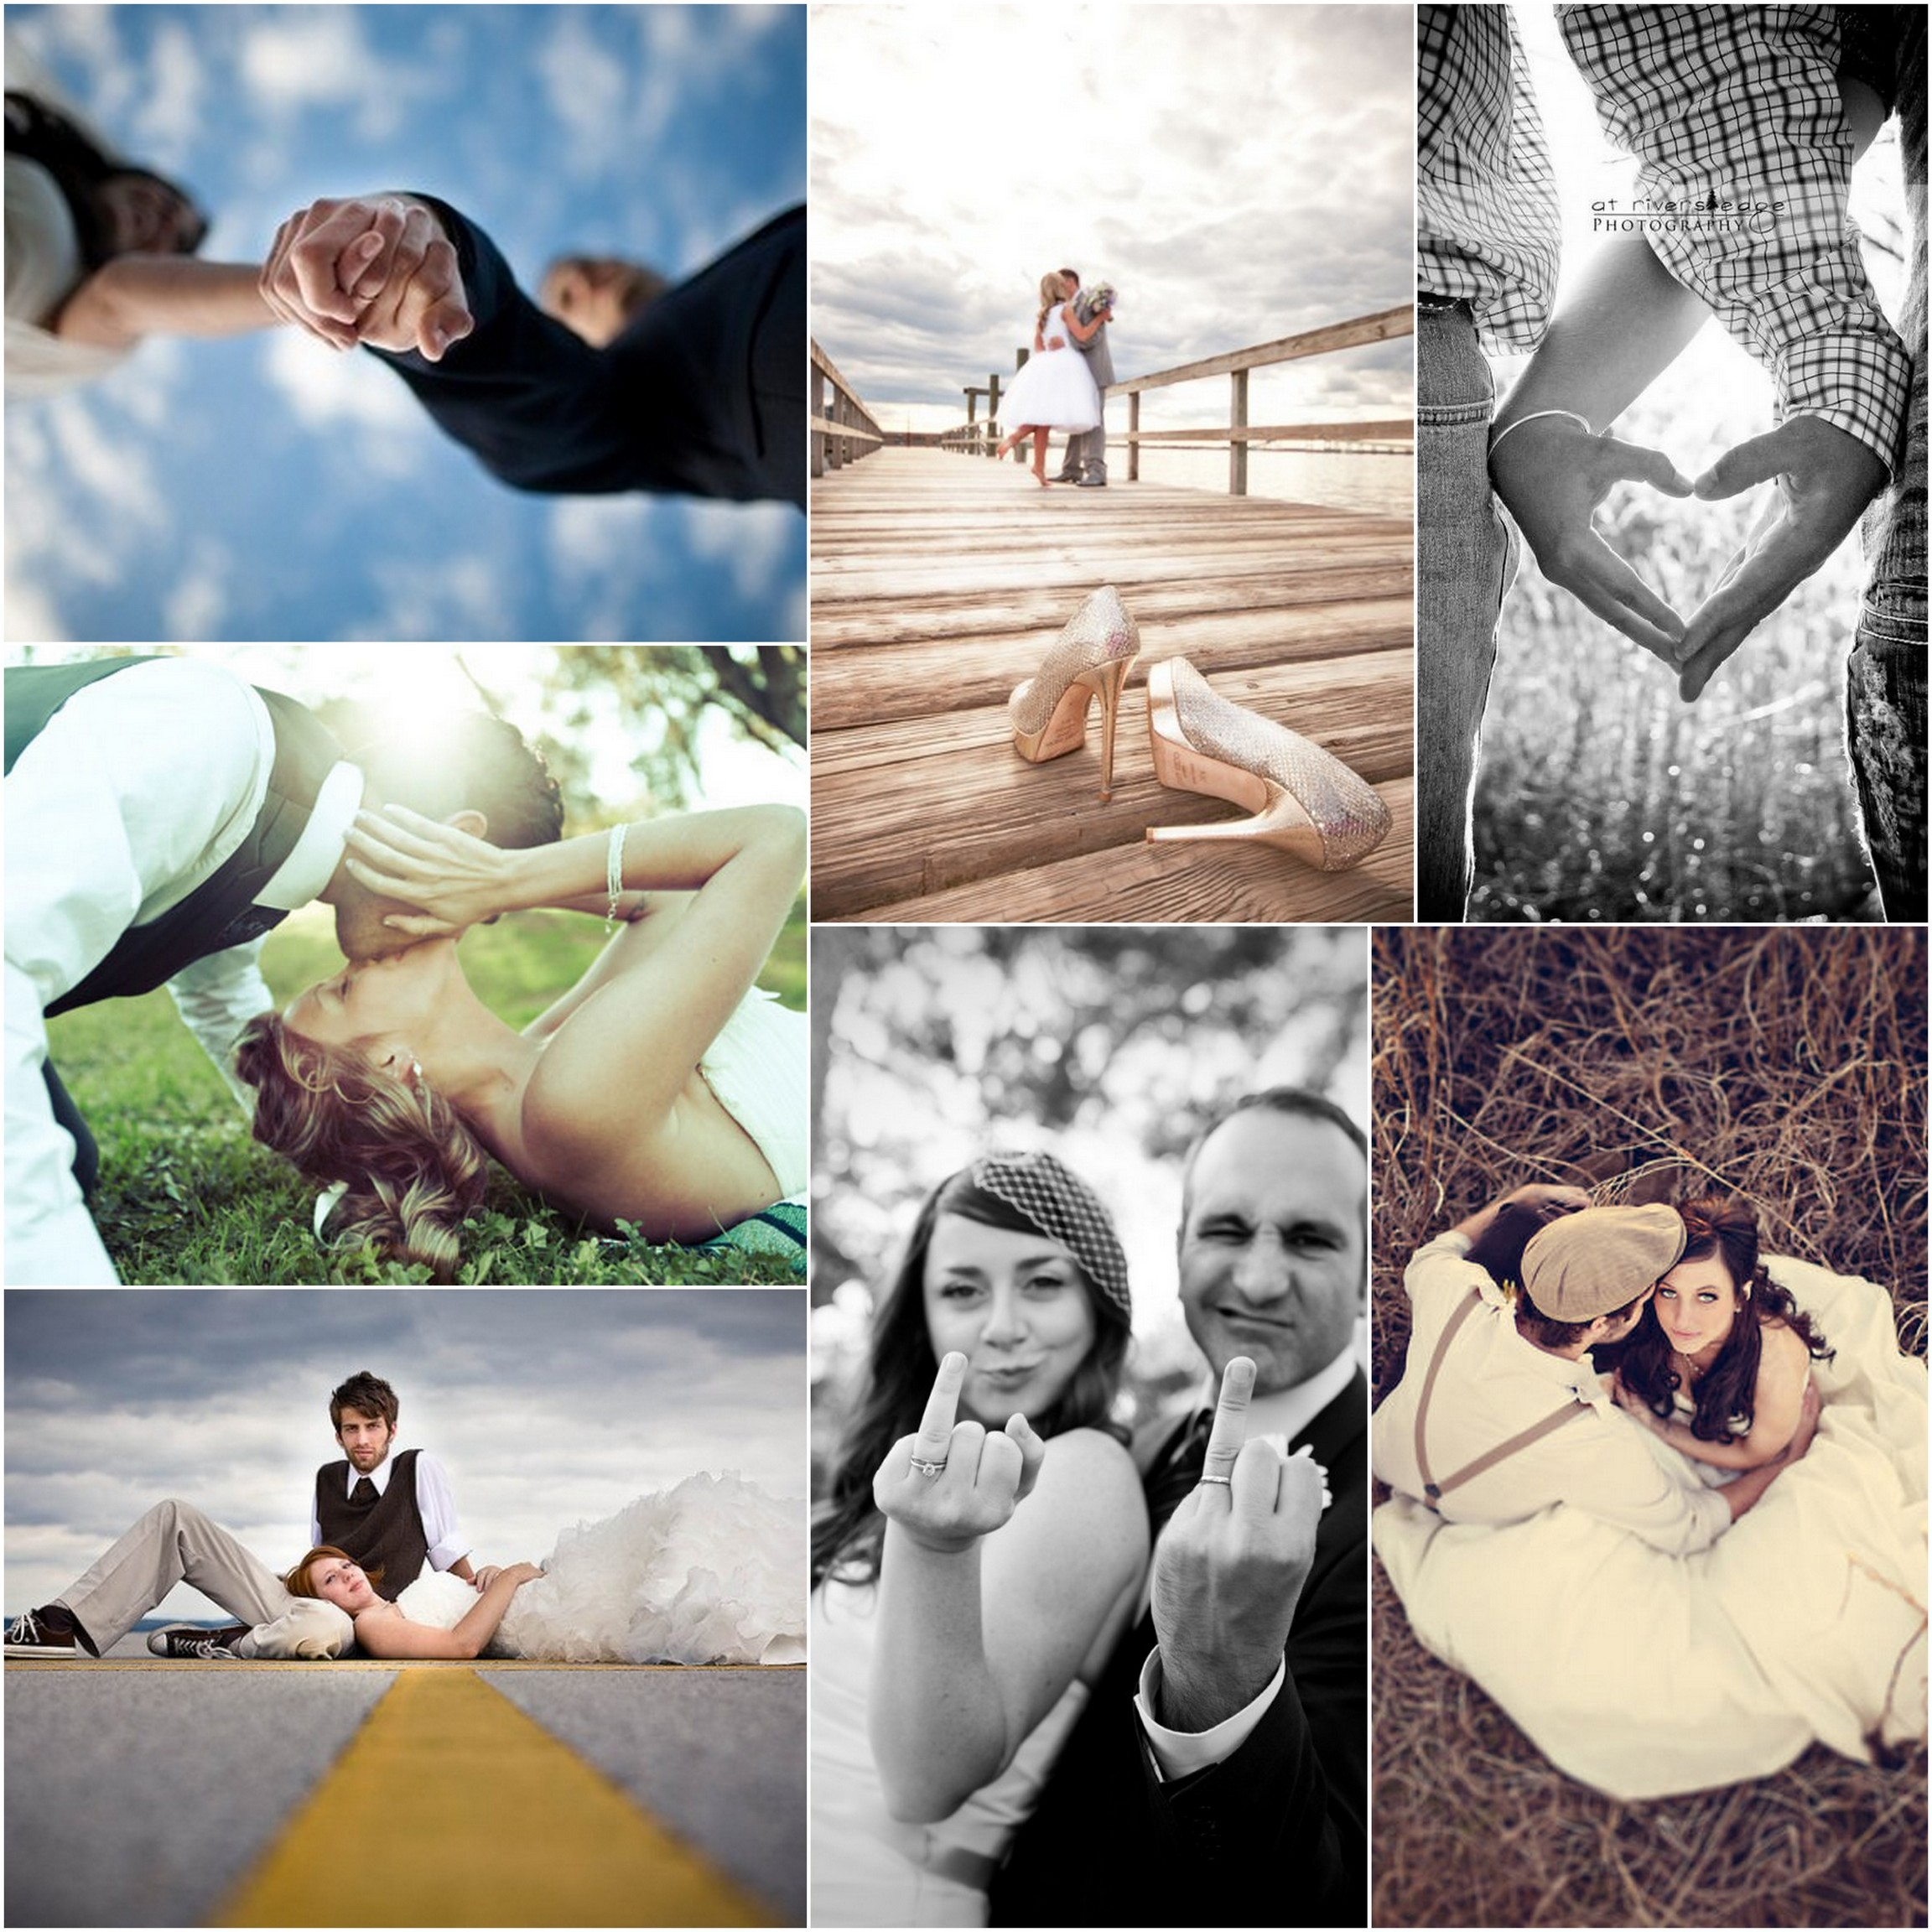 Wedding Photos Ideas: 22 Wedding Photo Ideas & Poses